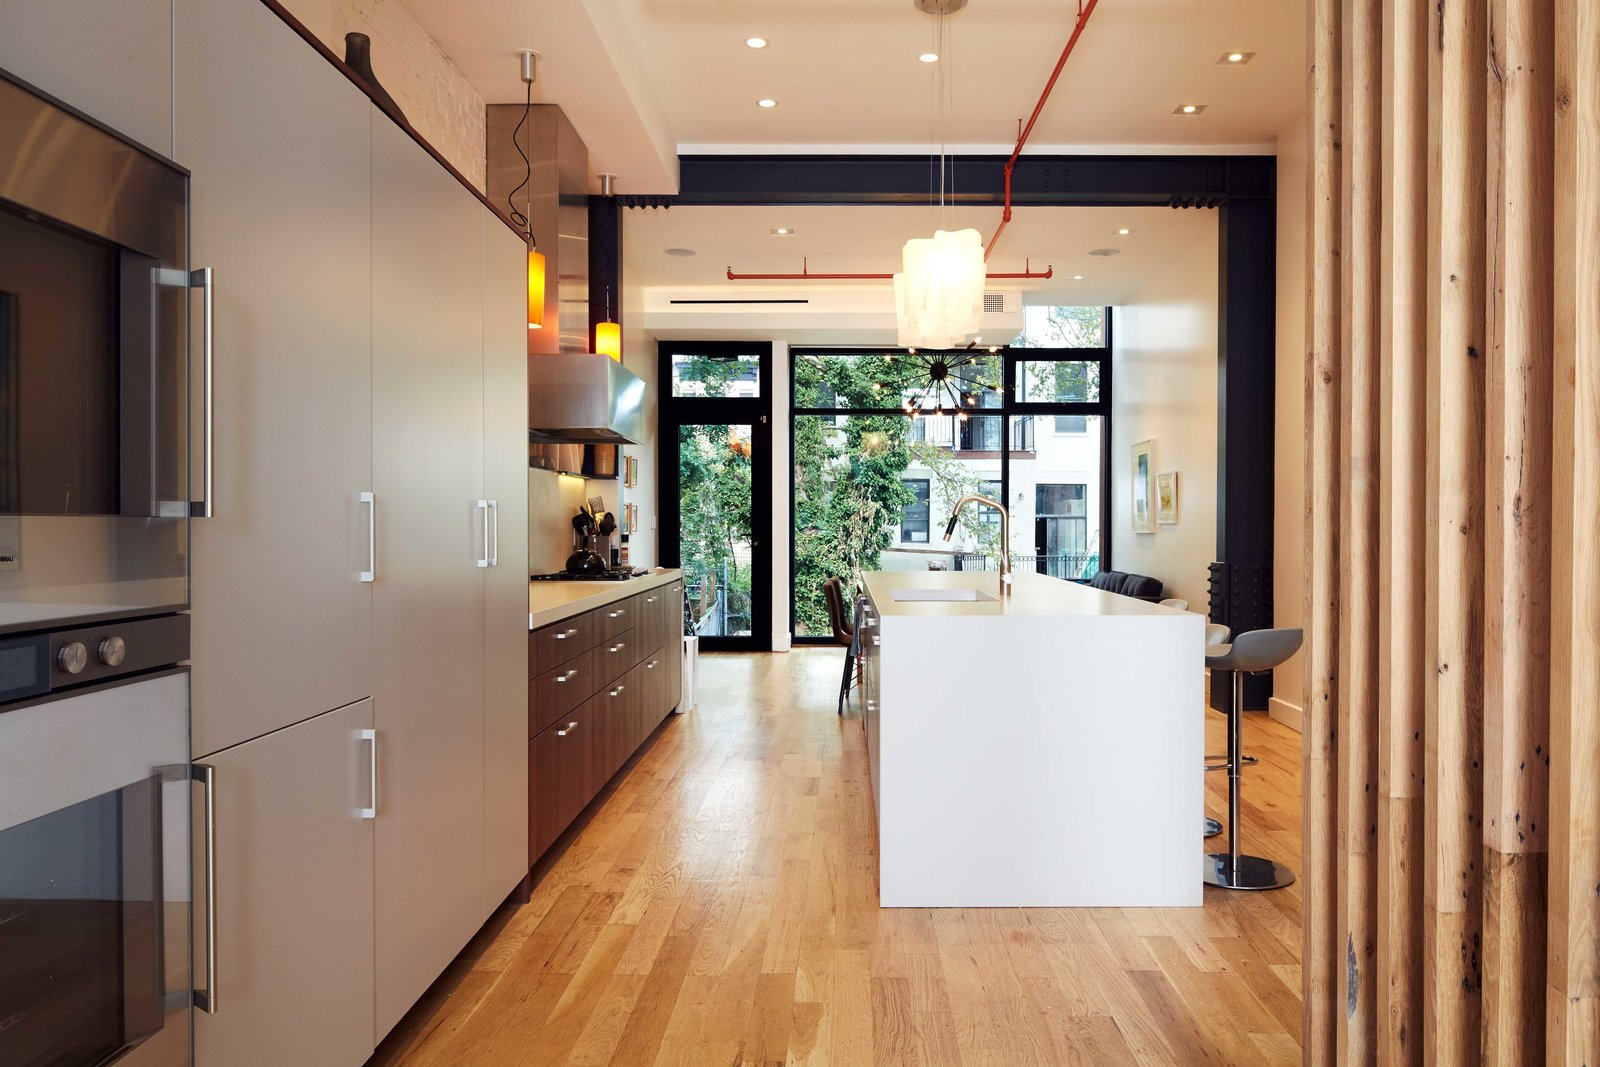 Kitchen, Engineered Quartz Counter, Refrigerator, Pendant Lighting, Medium Hardwood Floor, Cooktops, Wall Oven, Range Hood, and Undermount Sink  Harlem Townhouse by Opera Studio Architecture